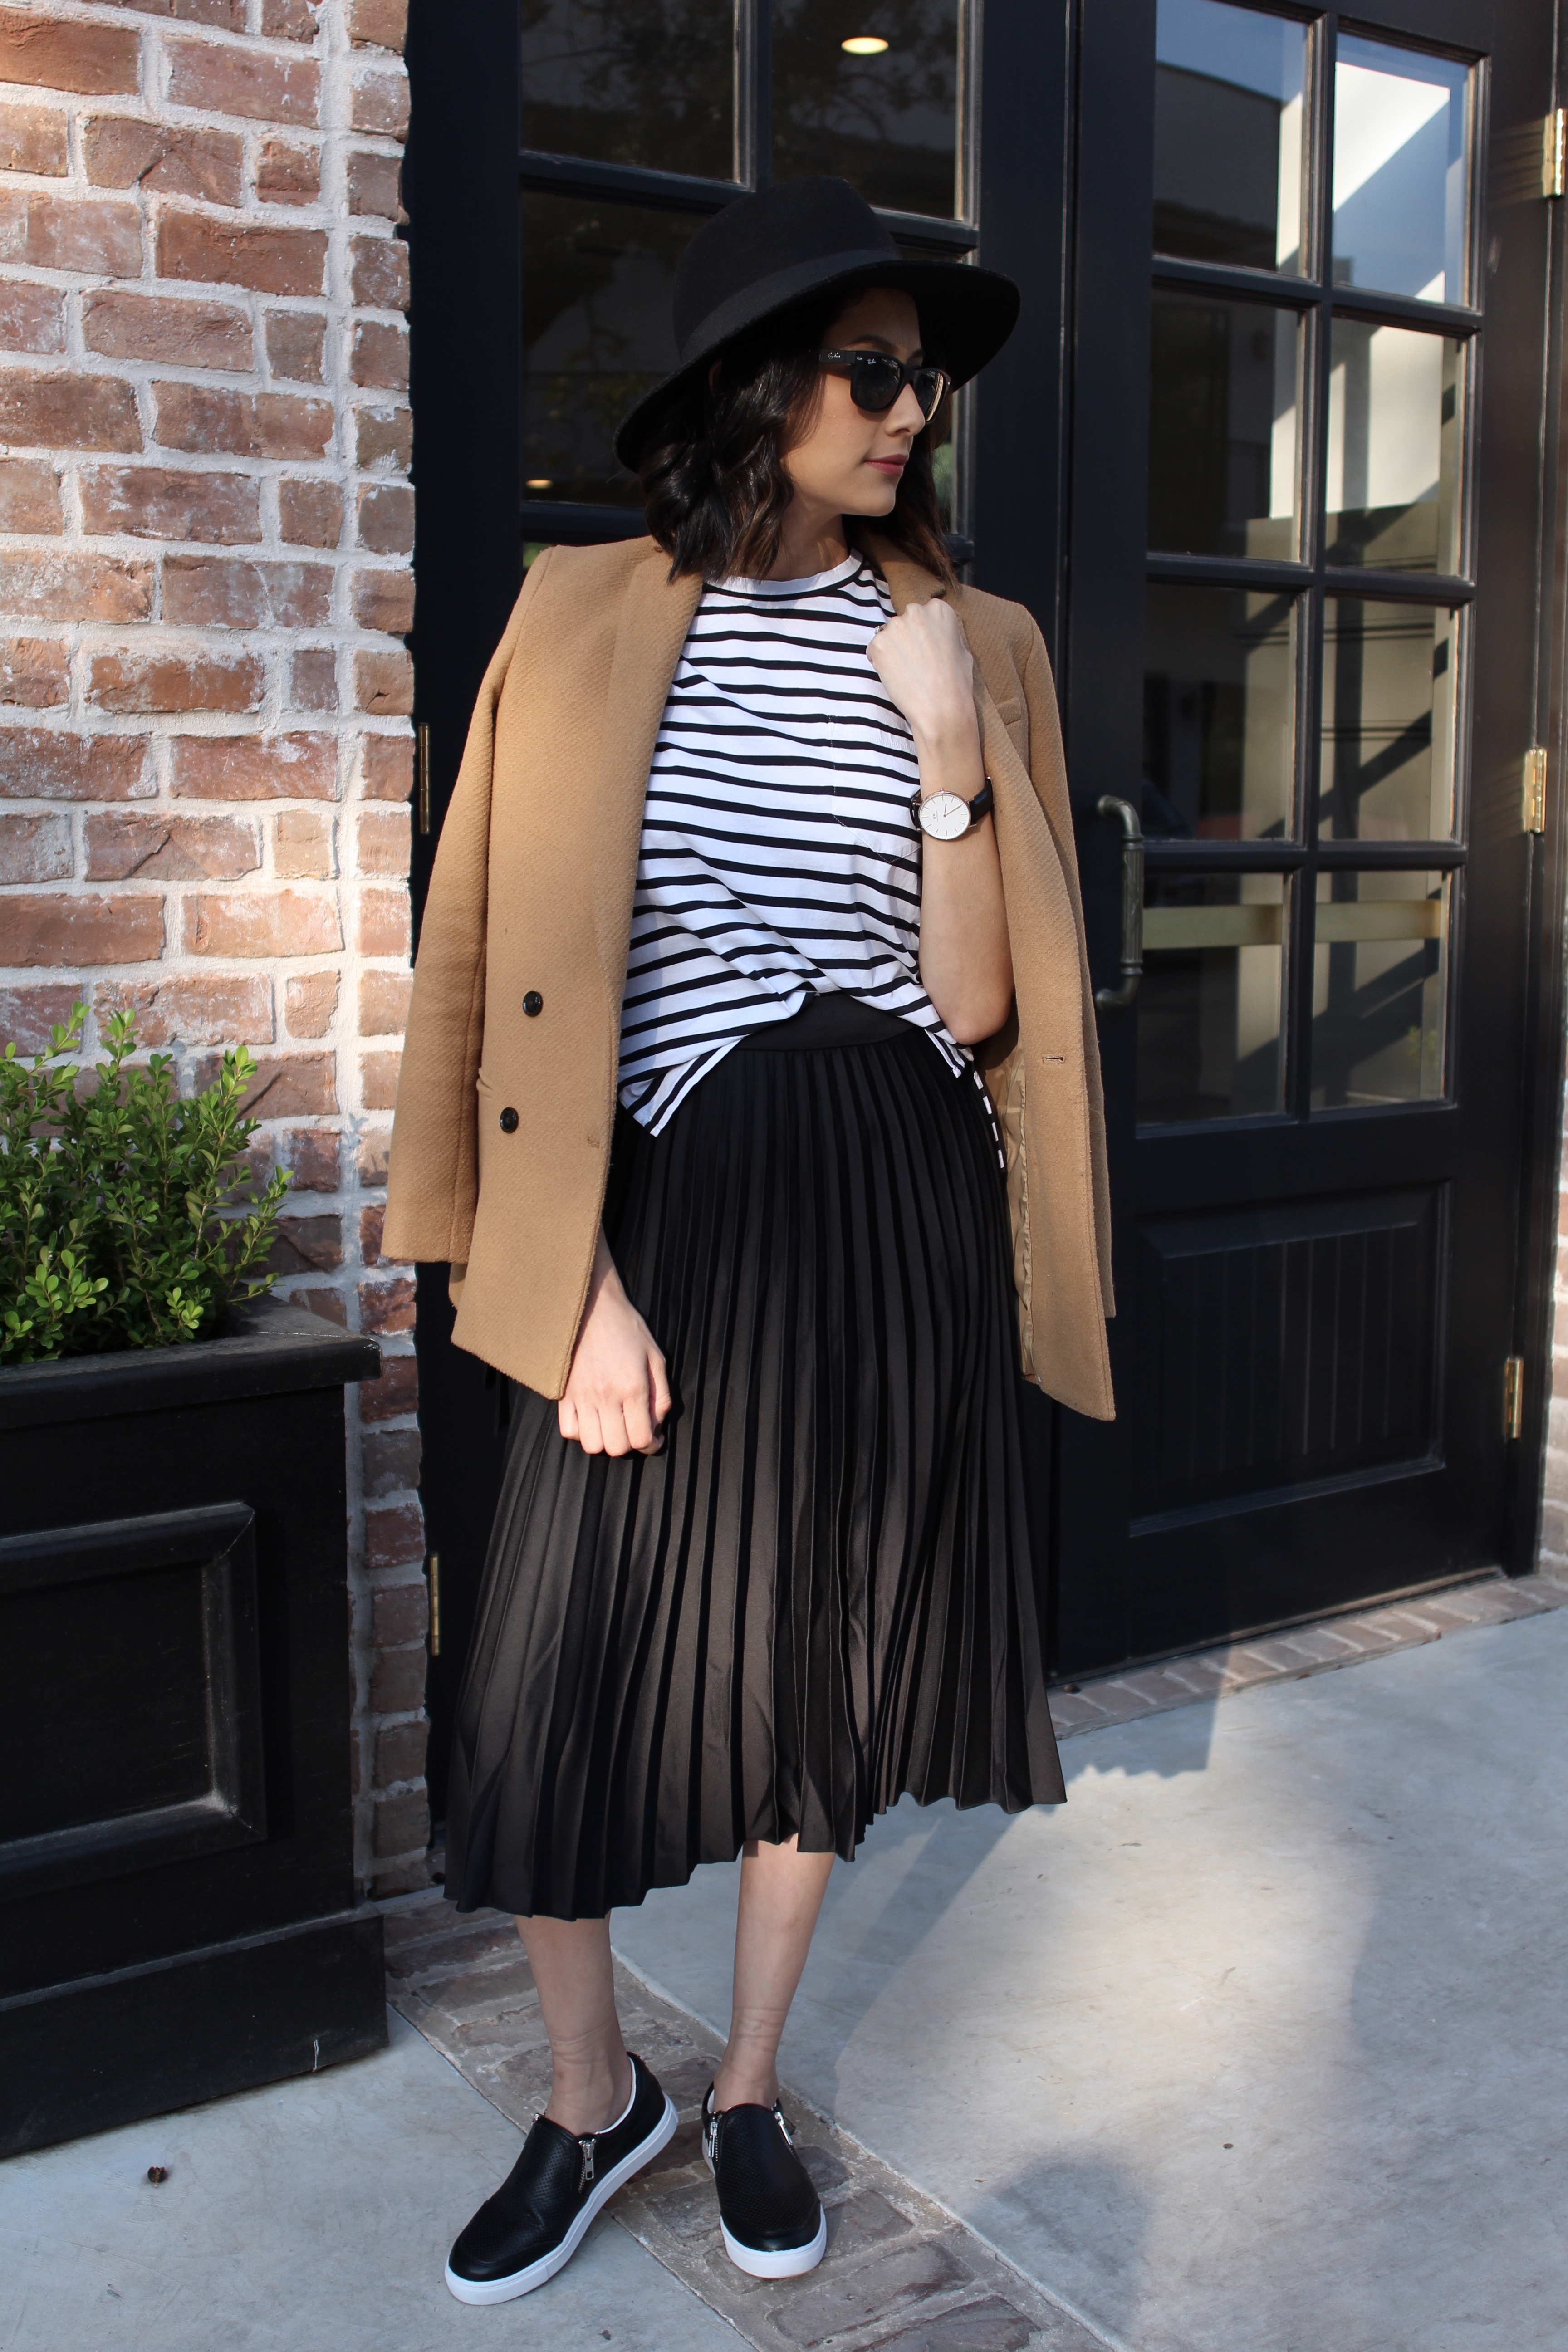 Tips for mastering the off-duty look